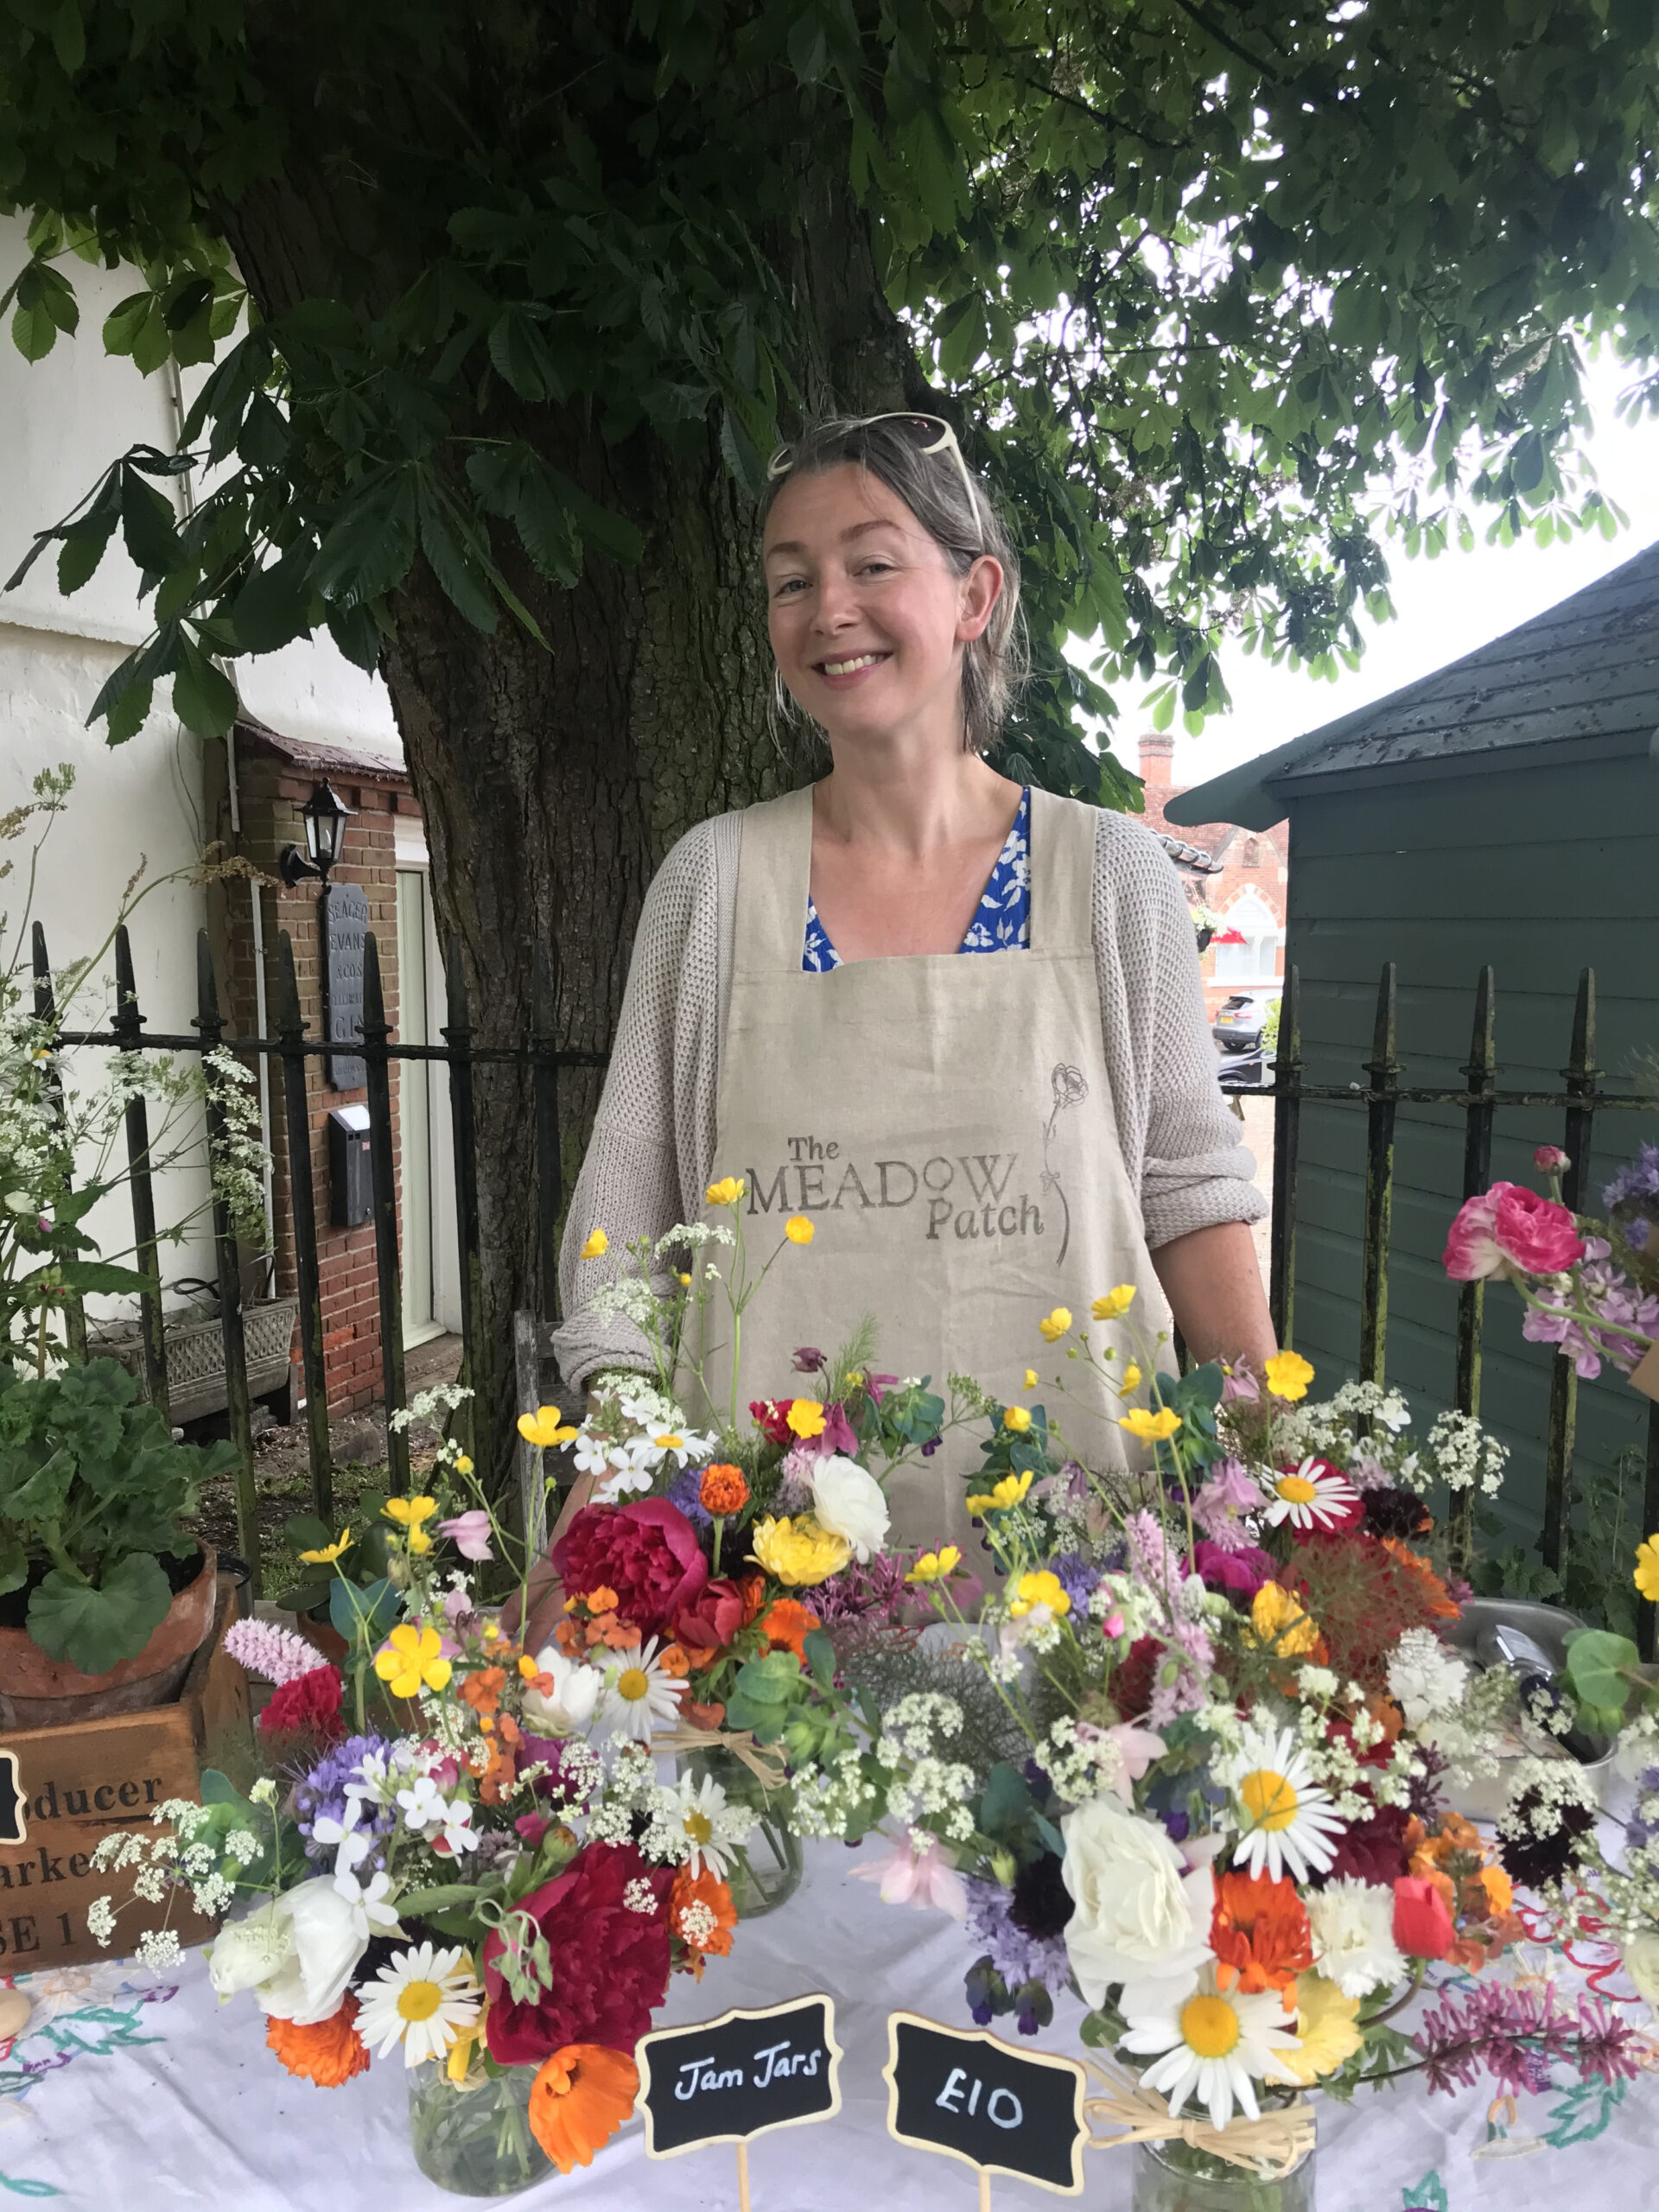 Victoria Uff of The Meadow Patch selling locally grown British flowers at her market stall